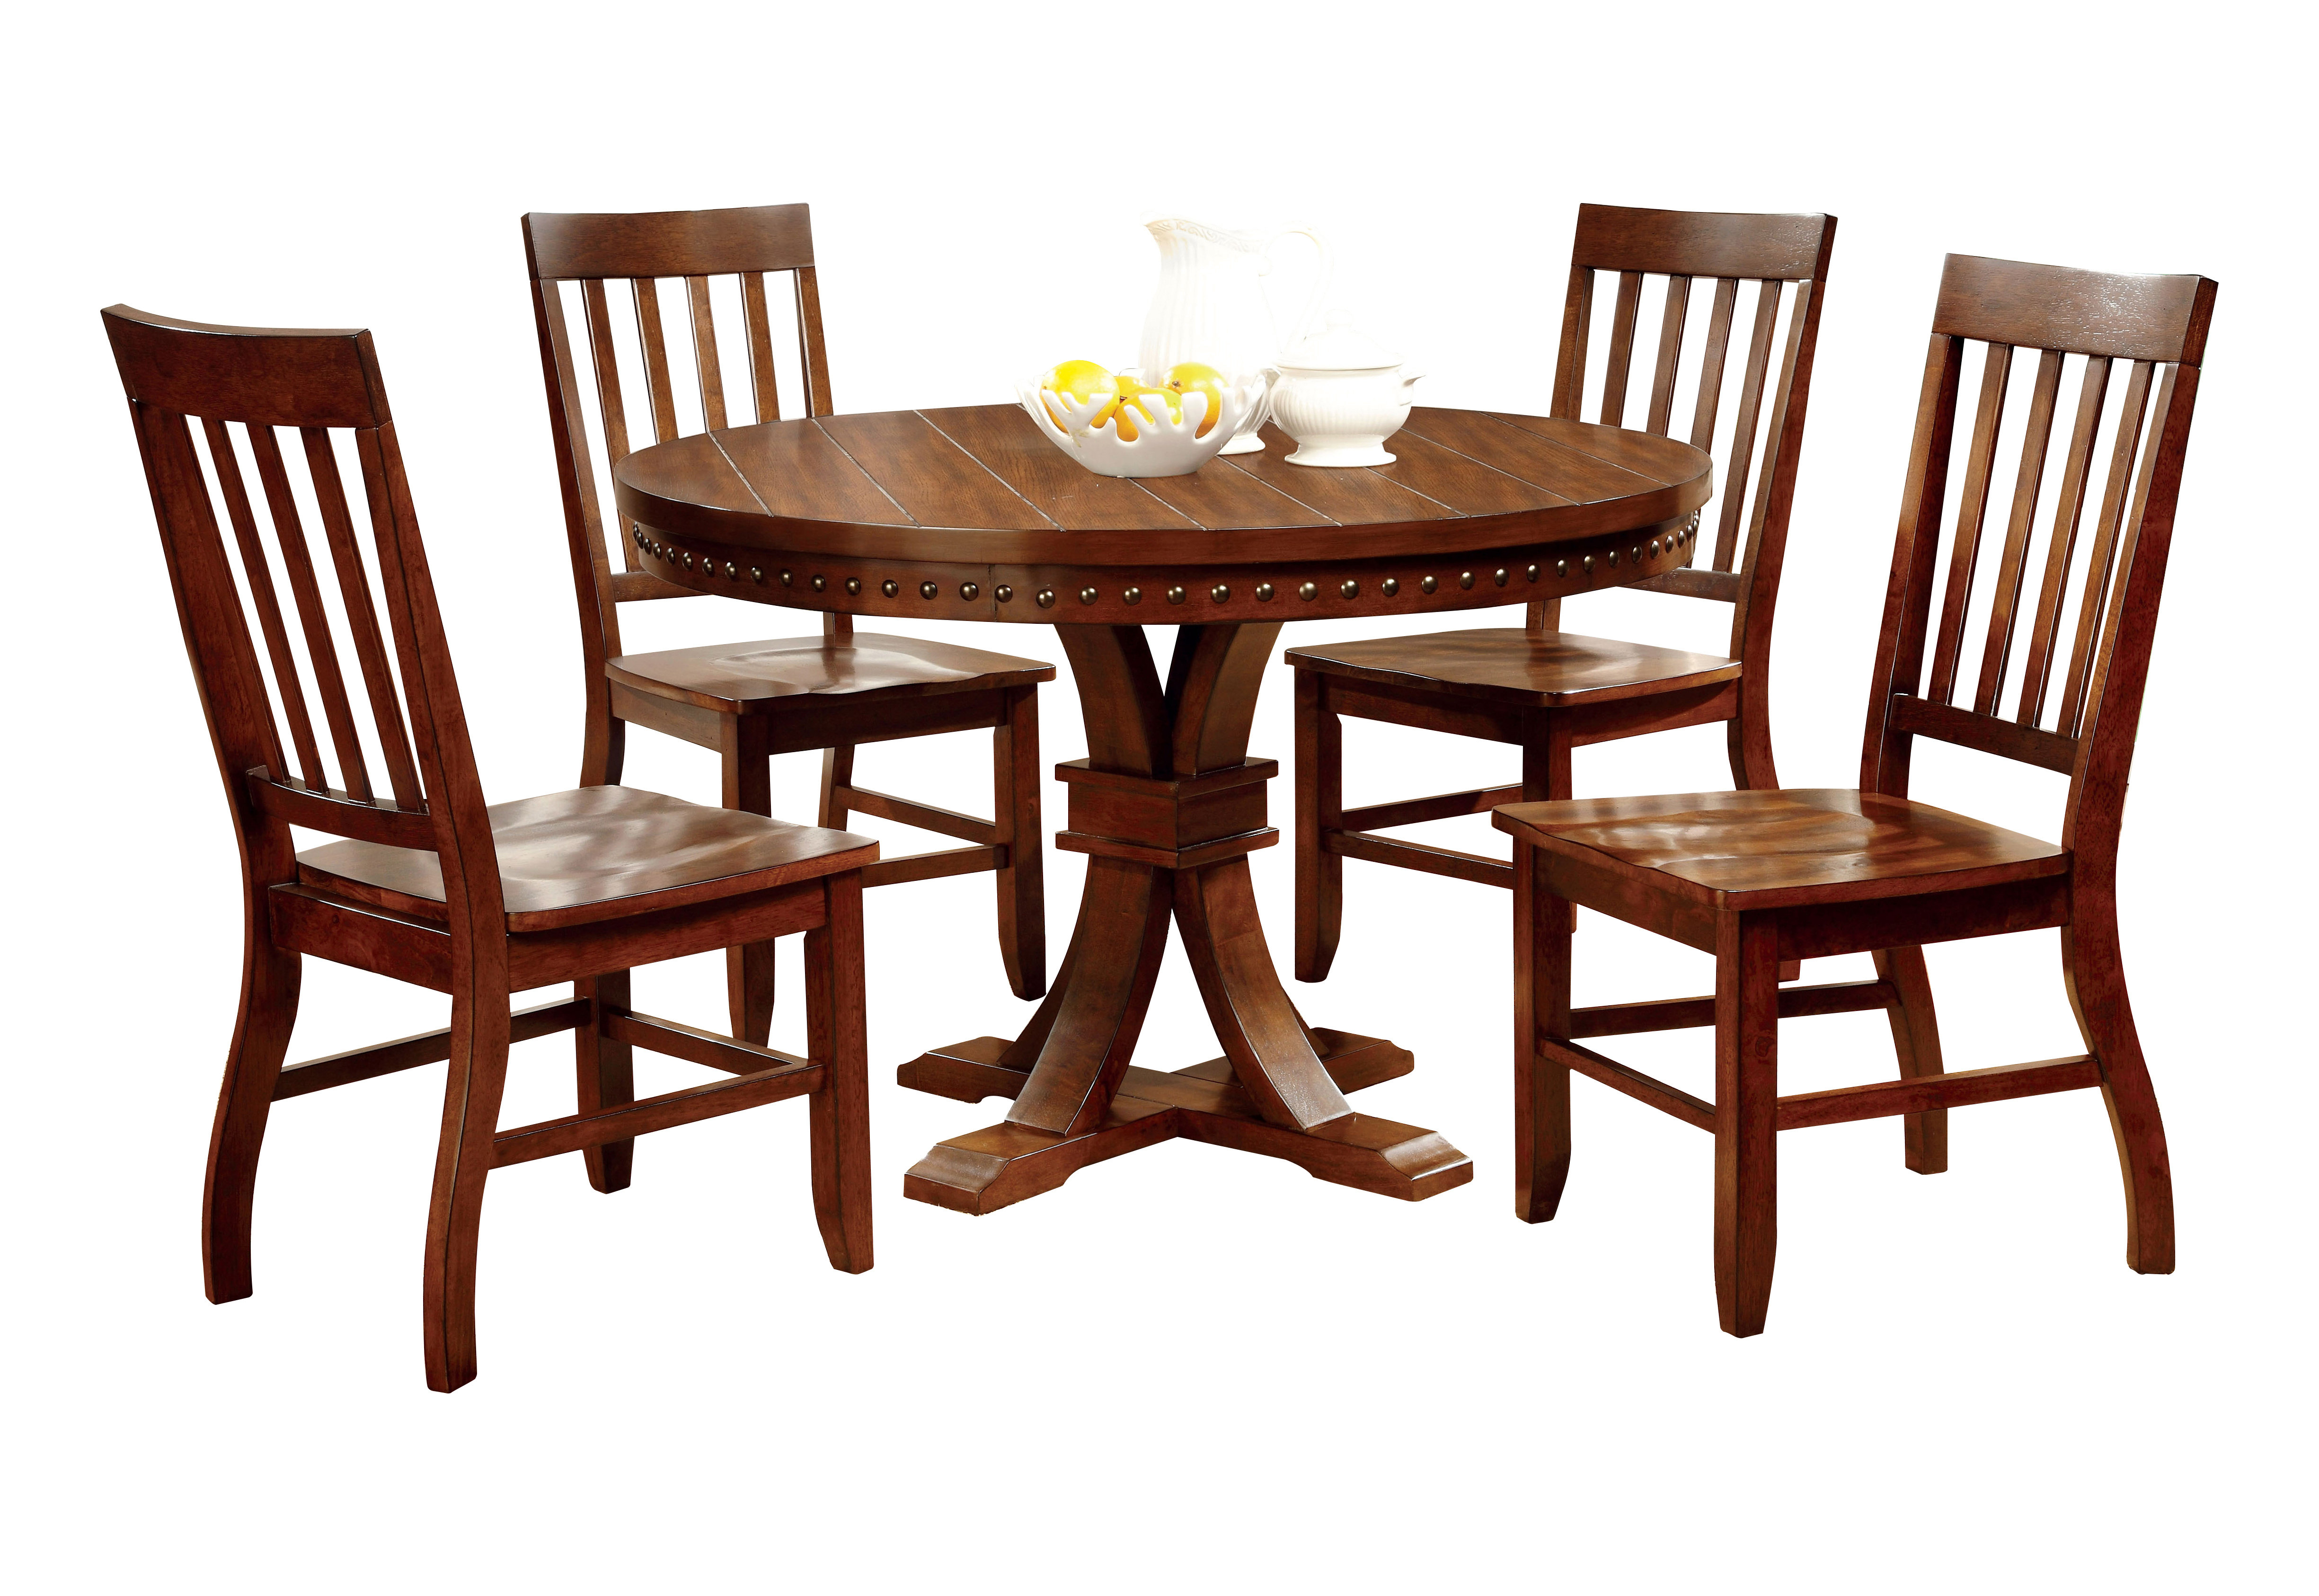 Wayfair Intended For Fashionable Jarrod 5 Piece Dining Sets (#19 of 20)